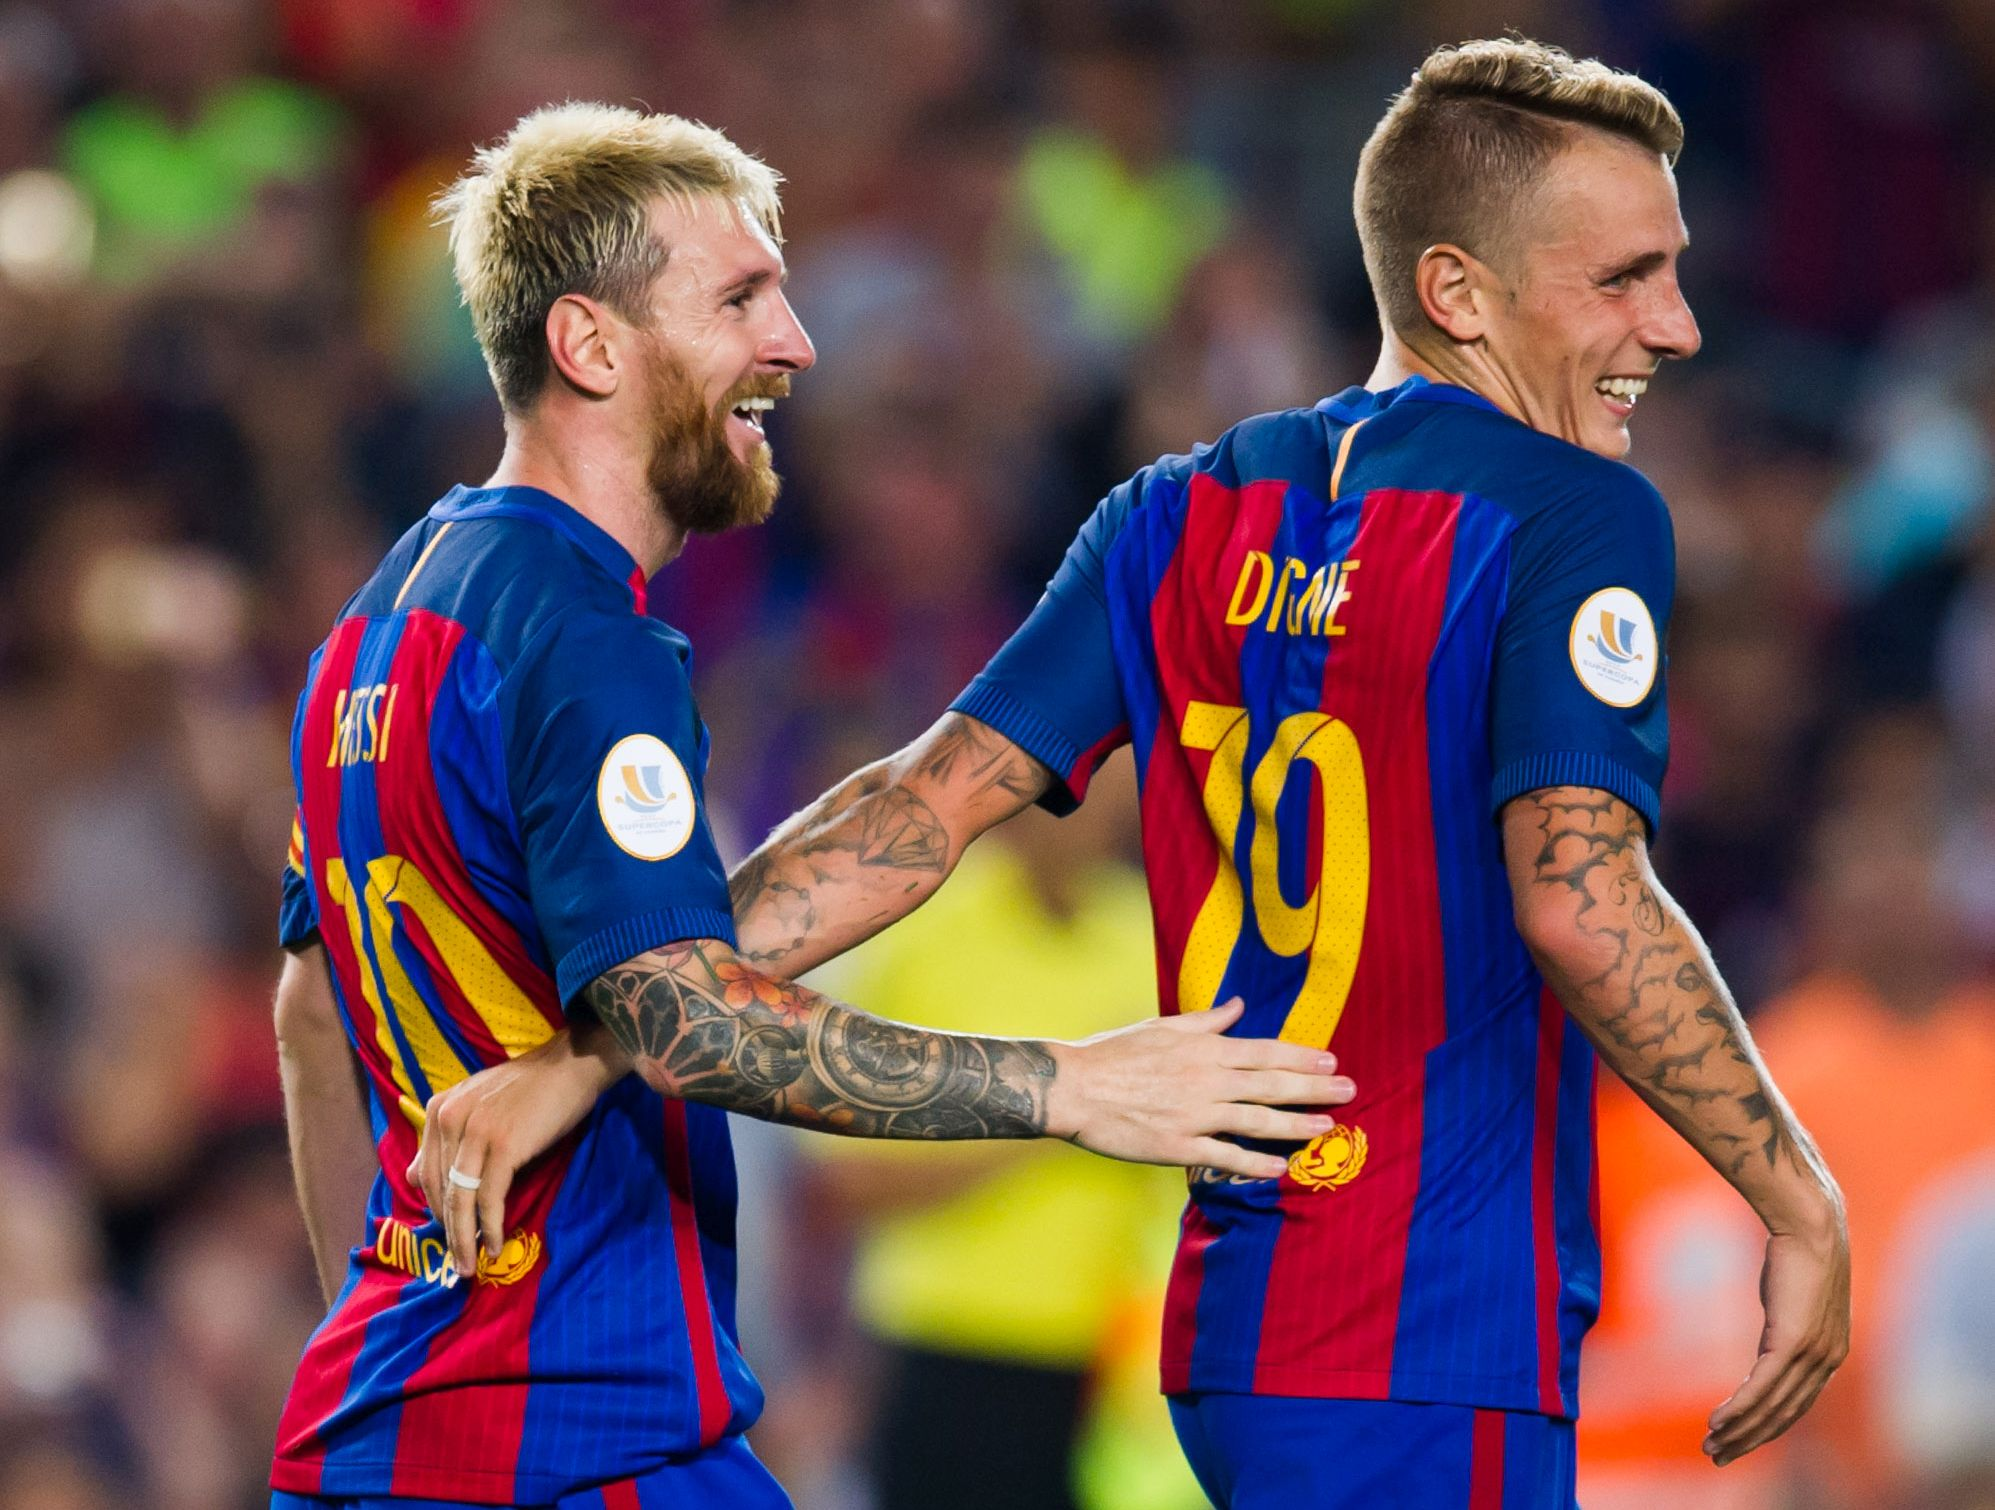 BARCELONA, SPAIN - AUGUST 17: Lionel Messi (L) of FC Barcelona celebrates with his teammate Lucas Digne after scoring his team's third goal during the Spanish Super Cup Final second leg match between FC Barcelona and Sevilla FC at Camp Nou on August 17, 2016 in Barcelona, Spain. (Photo by Alex Caparros/Getty Images)